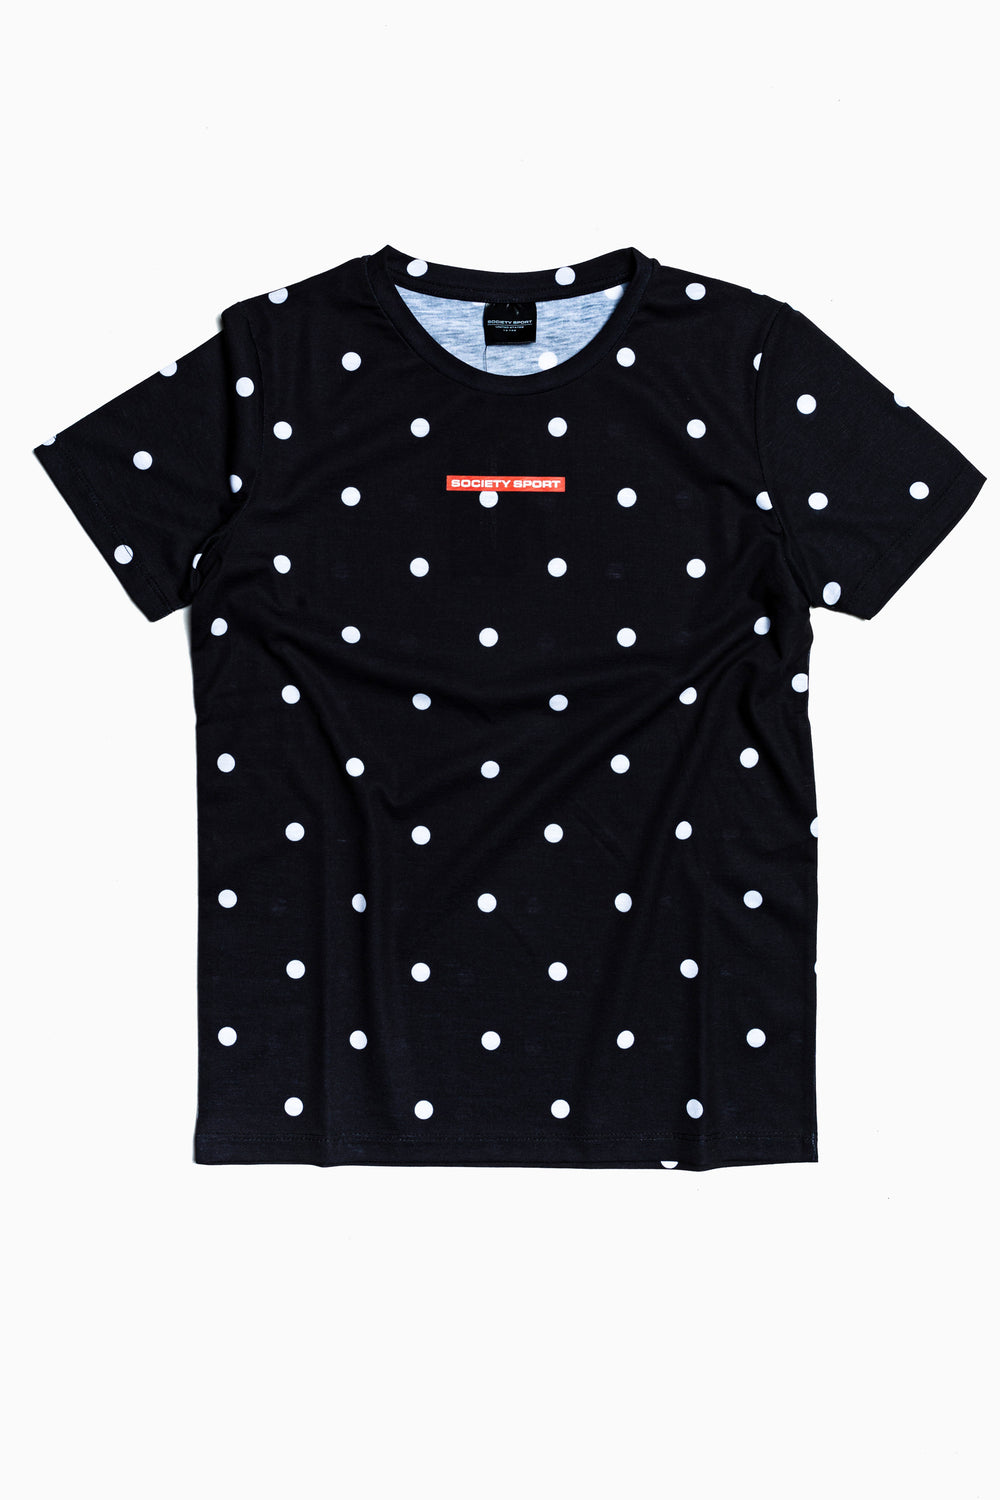 SOCIETY SPORT MONO DOT T-SHIRT